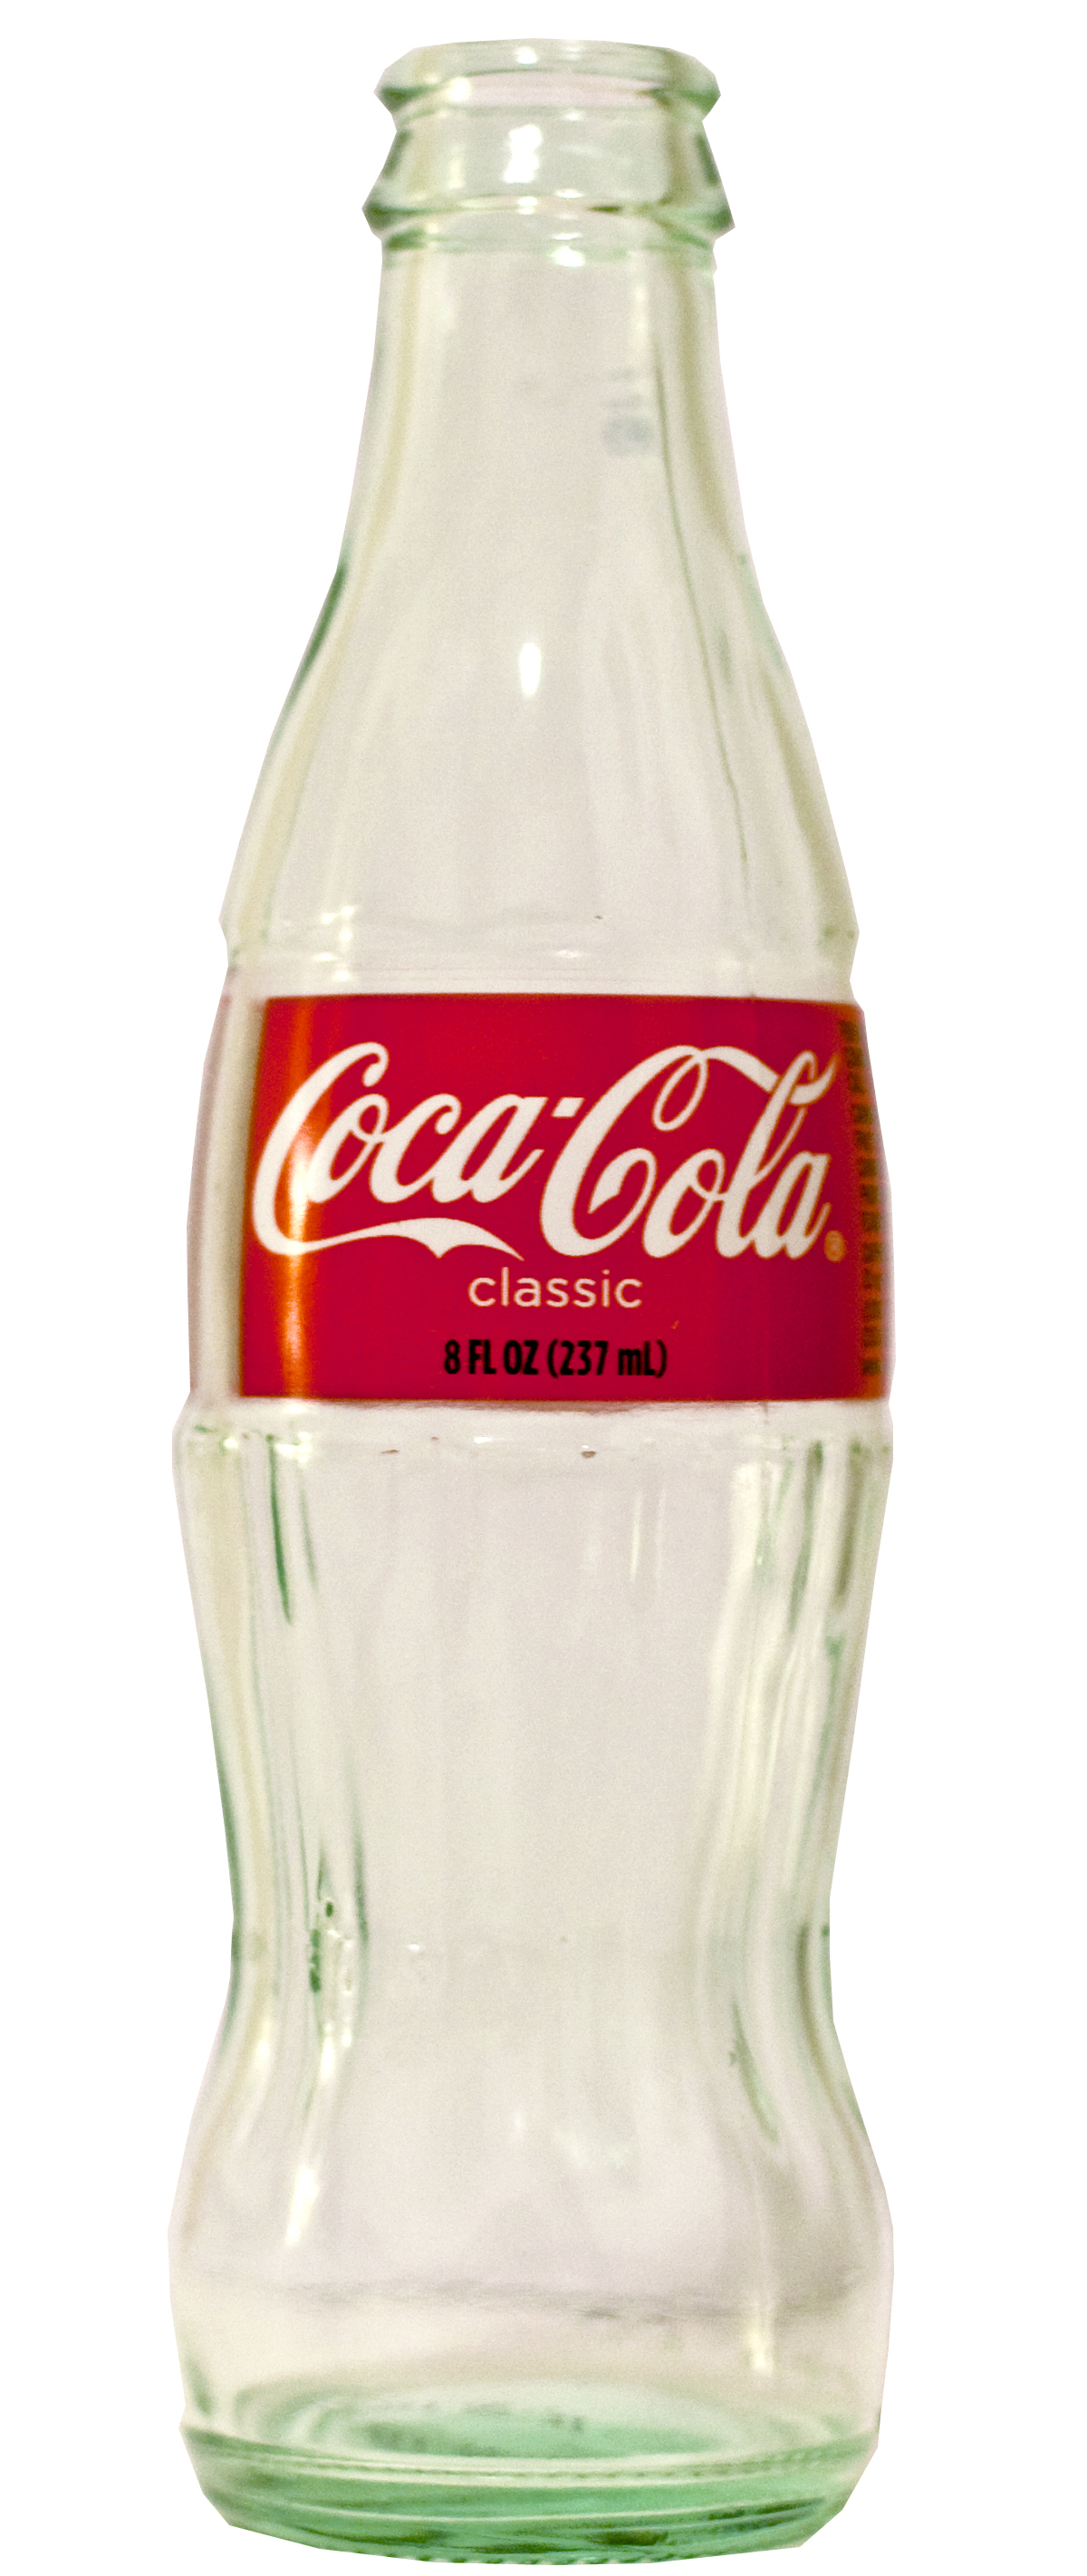 classic original coke bottle glass empty flickr photo